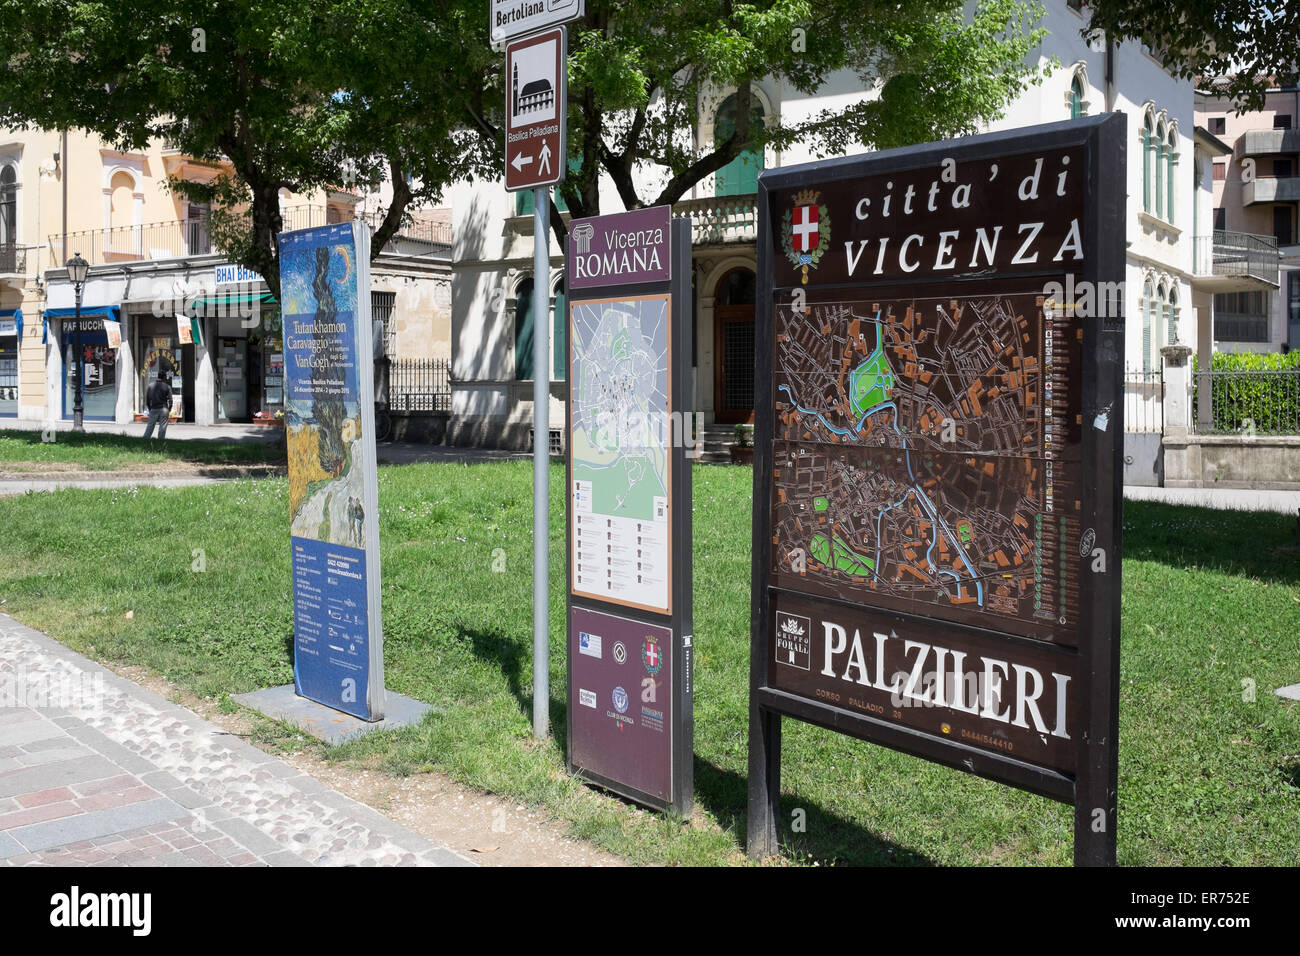 Tourist sign in the city center of Vicenza Italy. - Stock Image